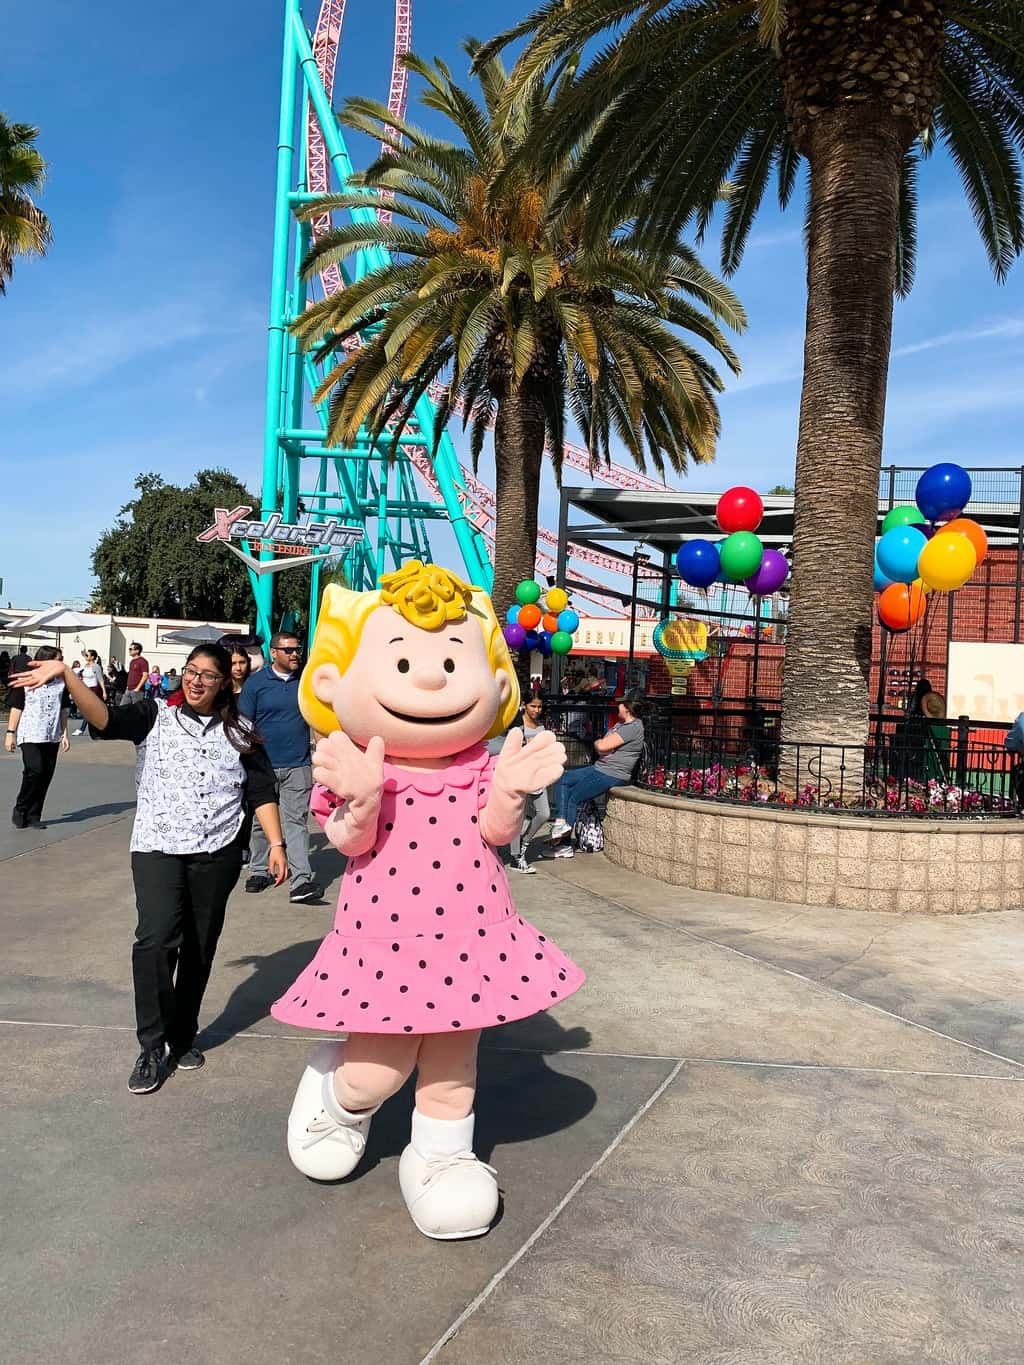 Are you a Snoopy fan? Attend the annual Knott's Berry Farm Peanuts Celebration every winter in Buena Park, California! From Snoopy inspired treats to live entertainment to meeting Pig Pen in the Livery Stable, there is something for every Snoopy fan.